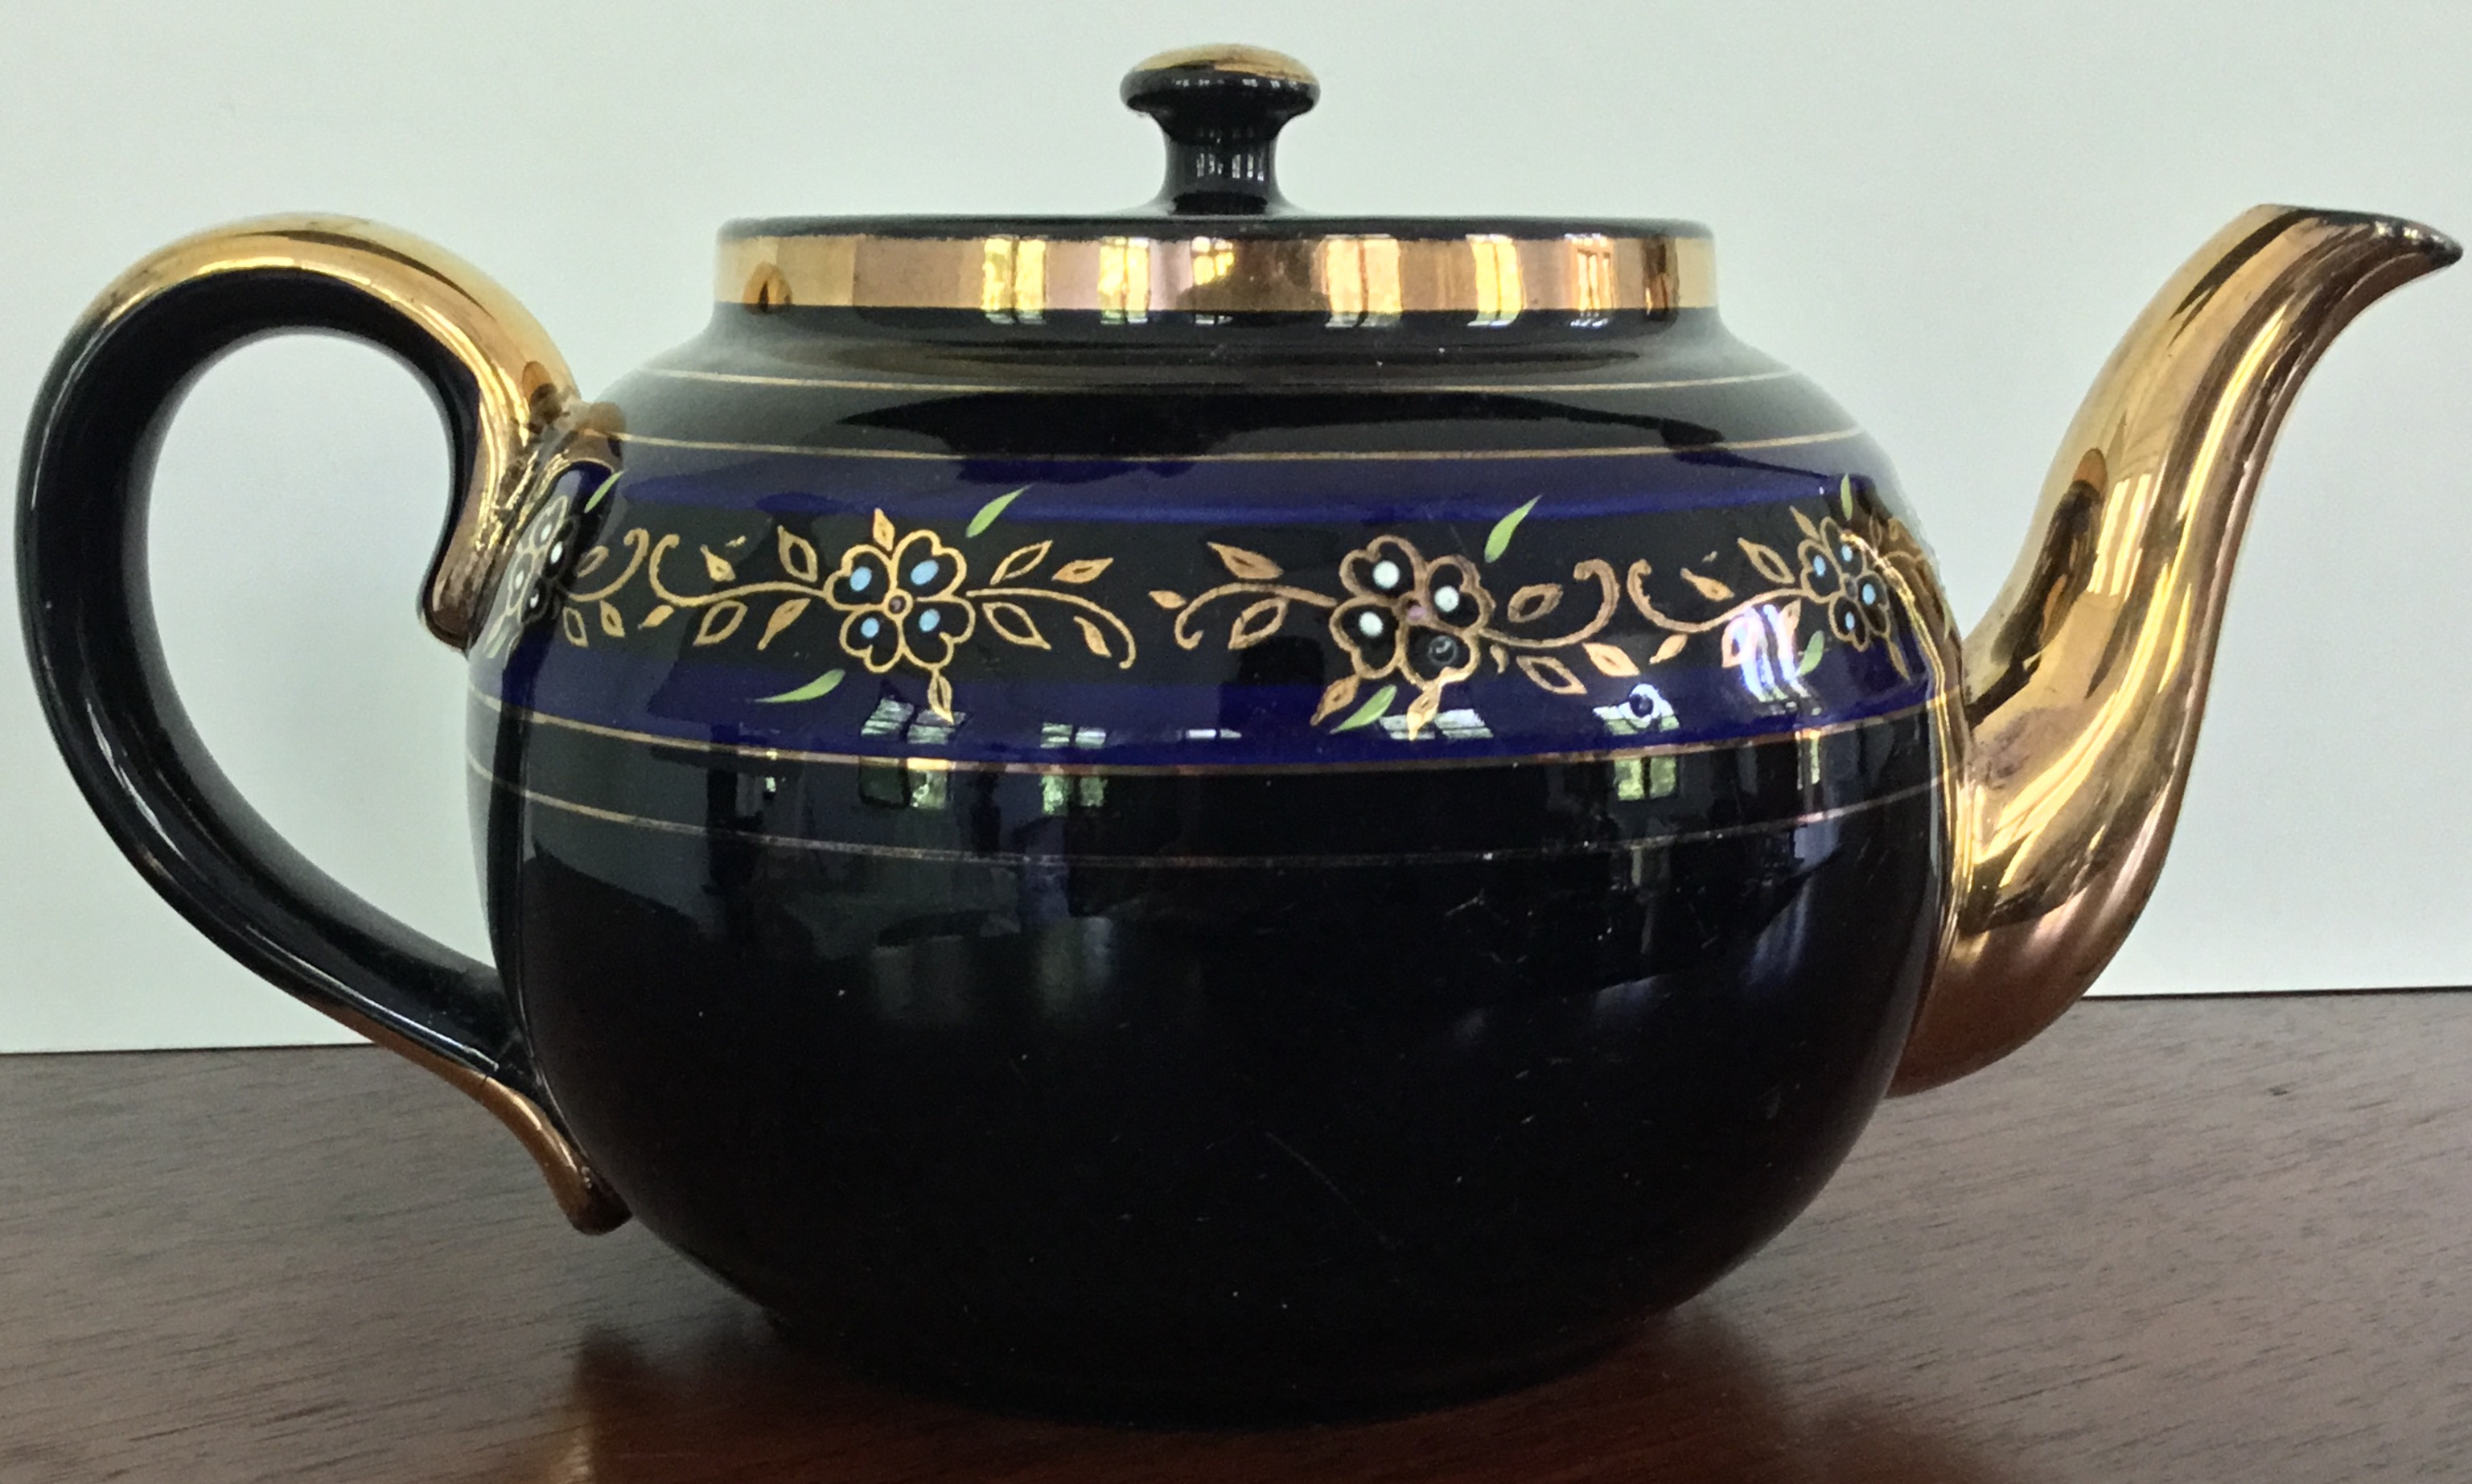 Blue and Black Teapot, Made in England